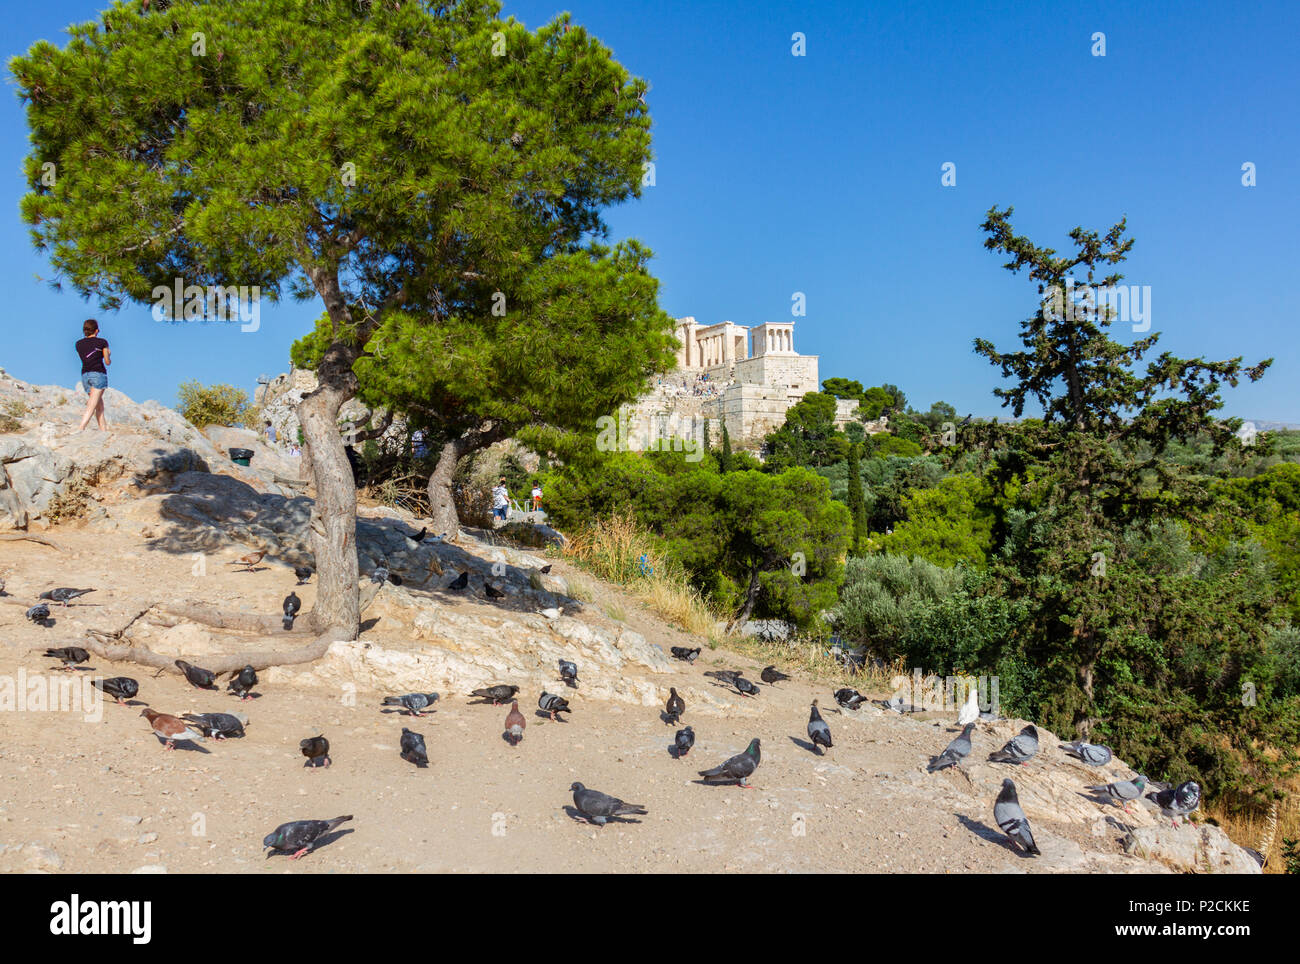 Scenic view of tourist gazing towards the the rock of the Acropolis of Athens in Greece with pigeons in the foreground - Stock Image